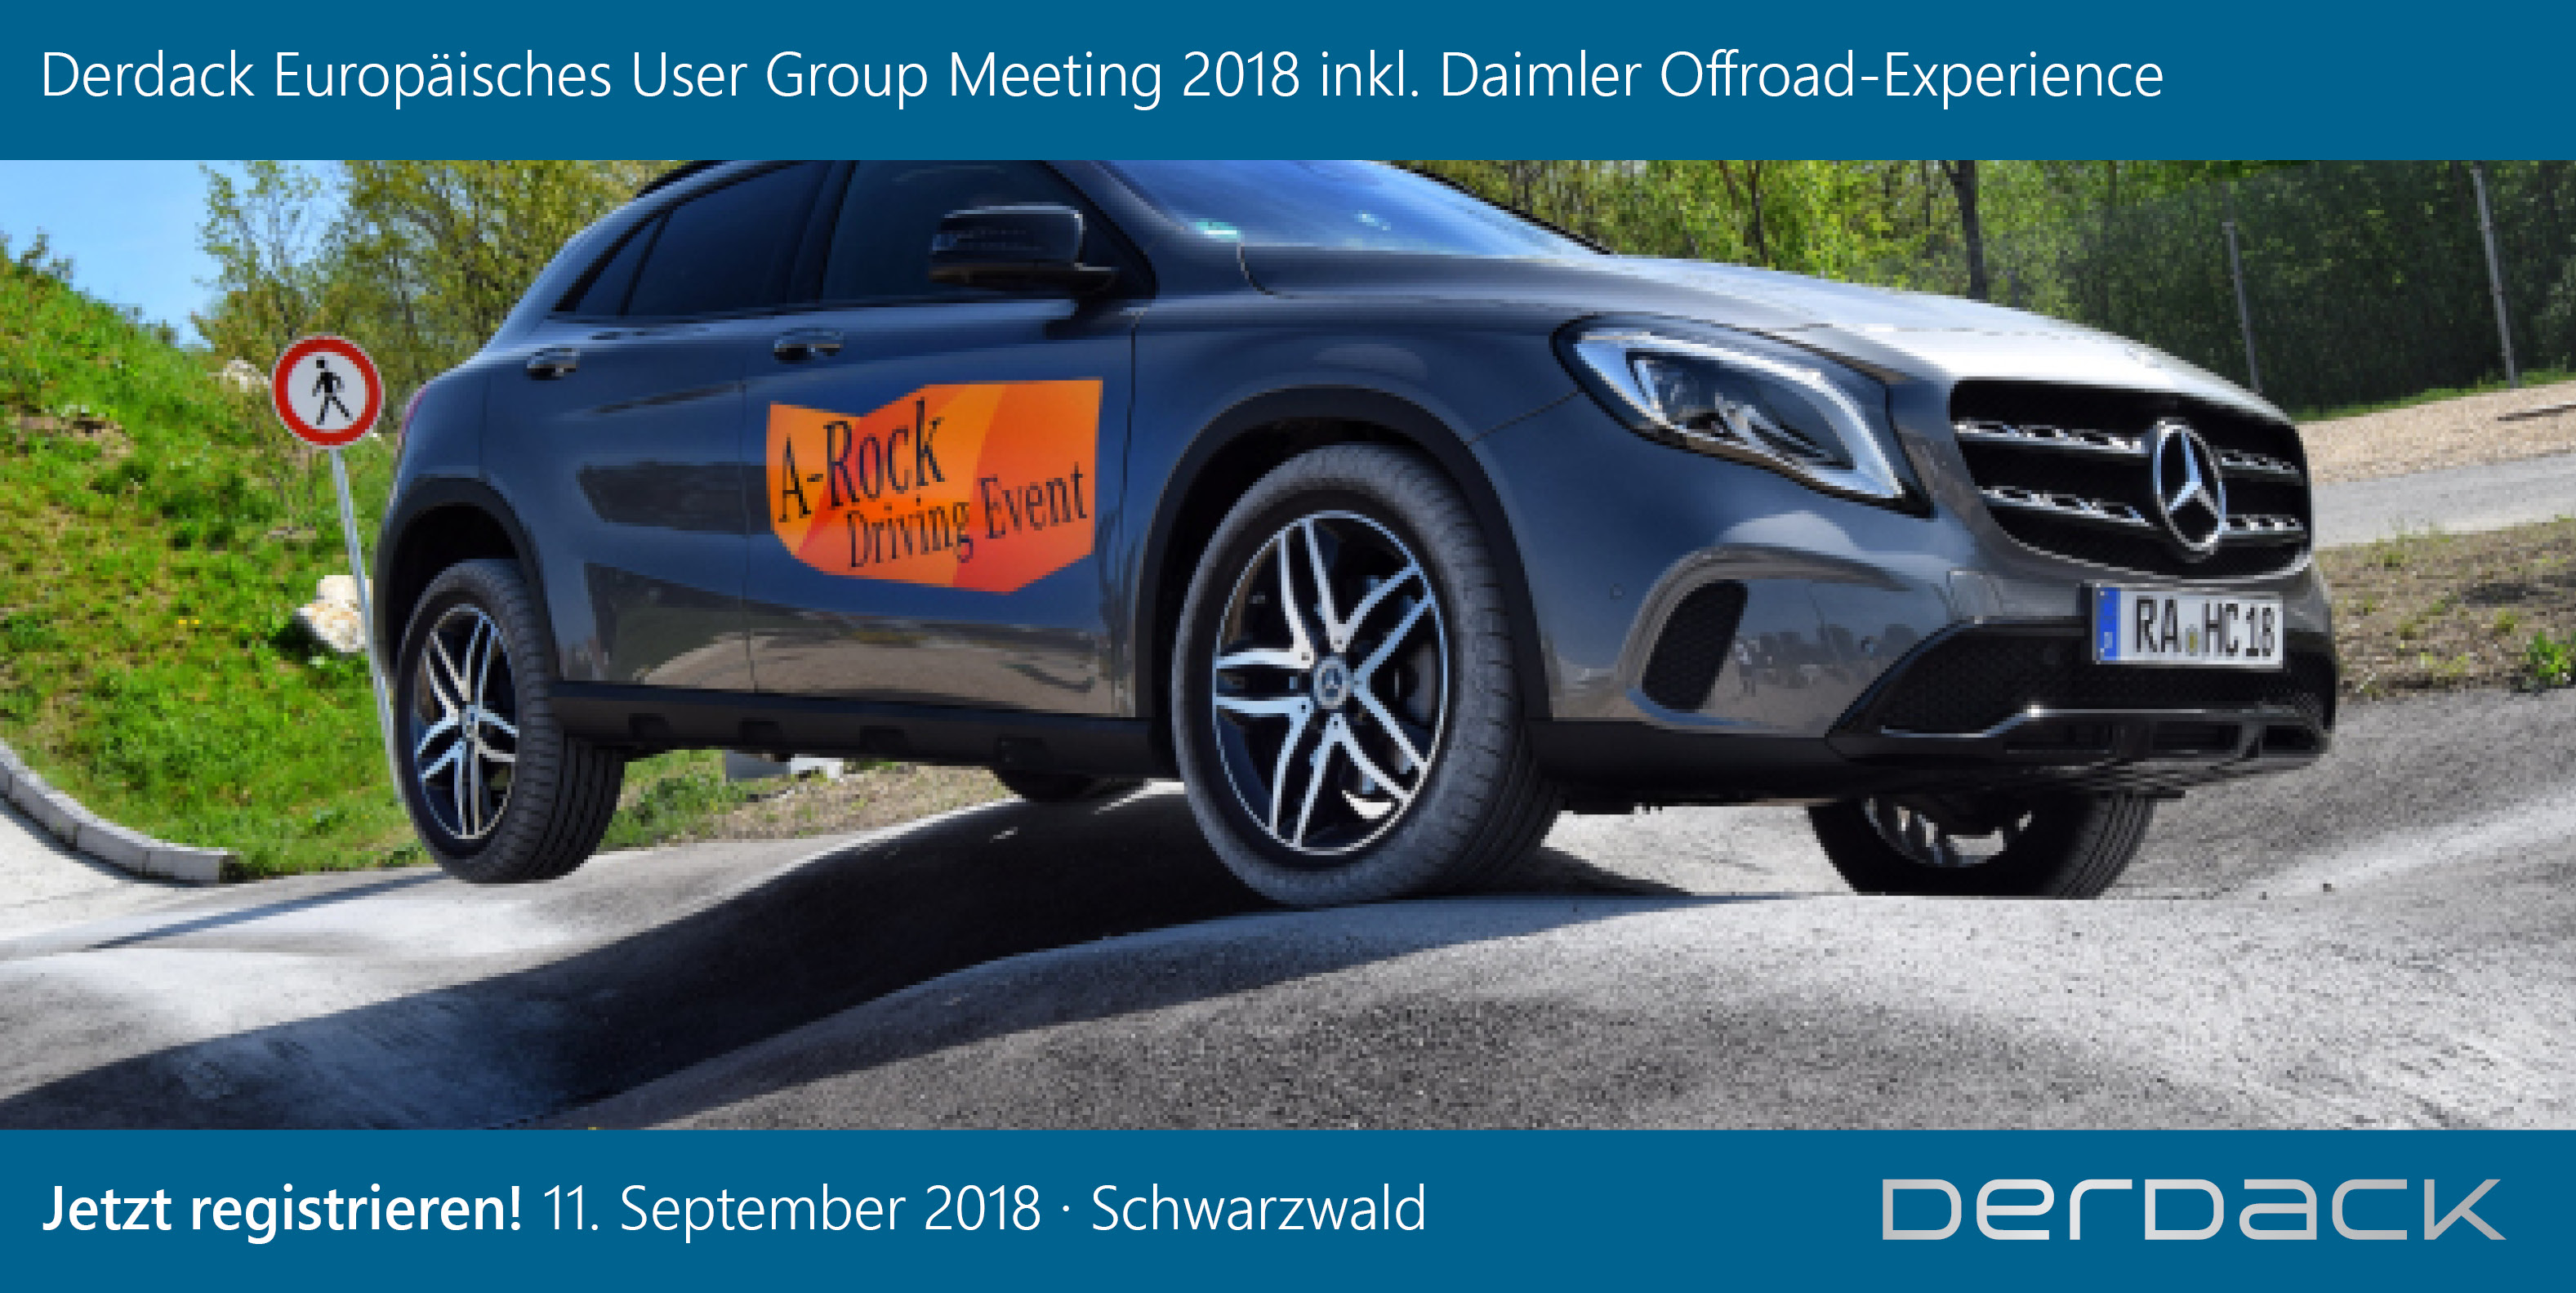 Derdack Europäisches User Group Meeting 2018 (DEUG)